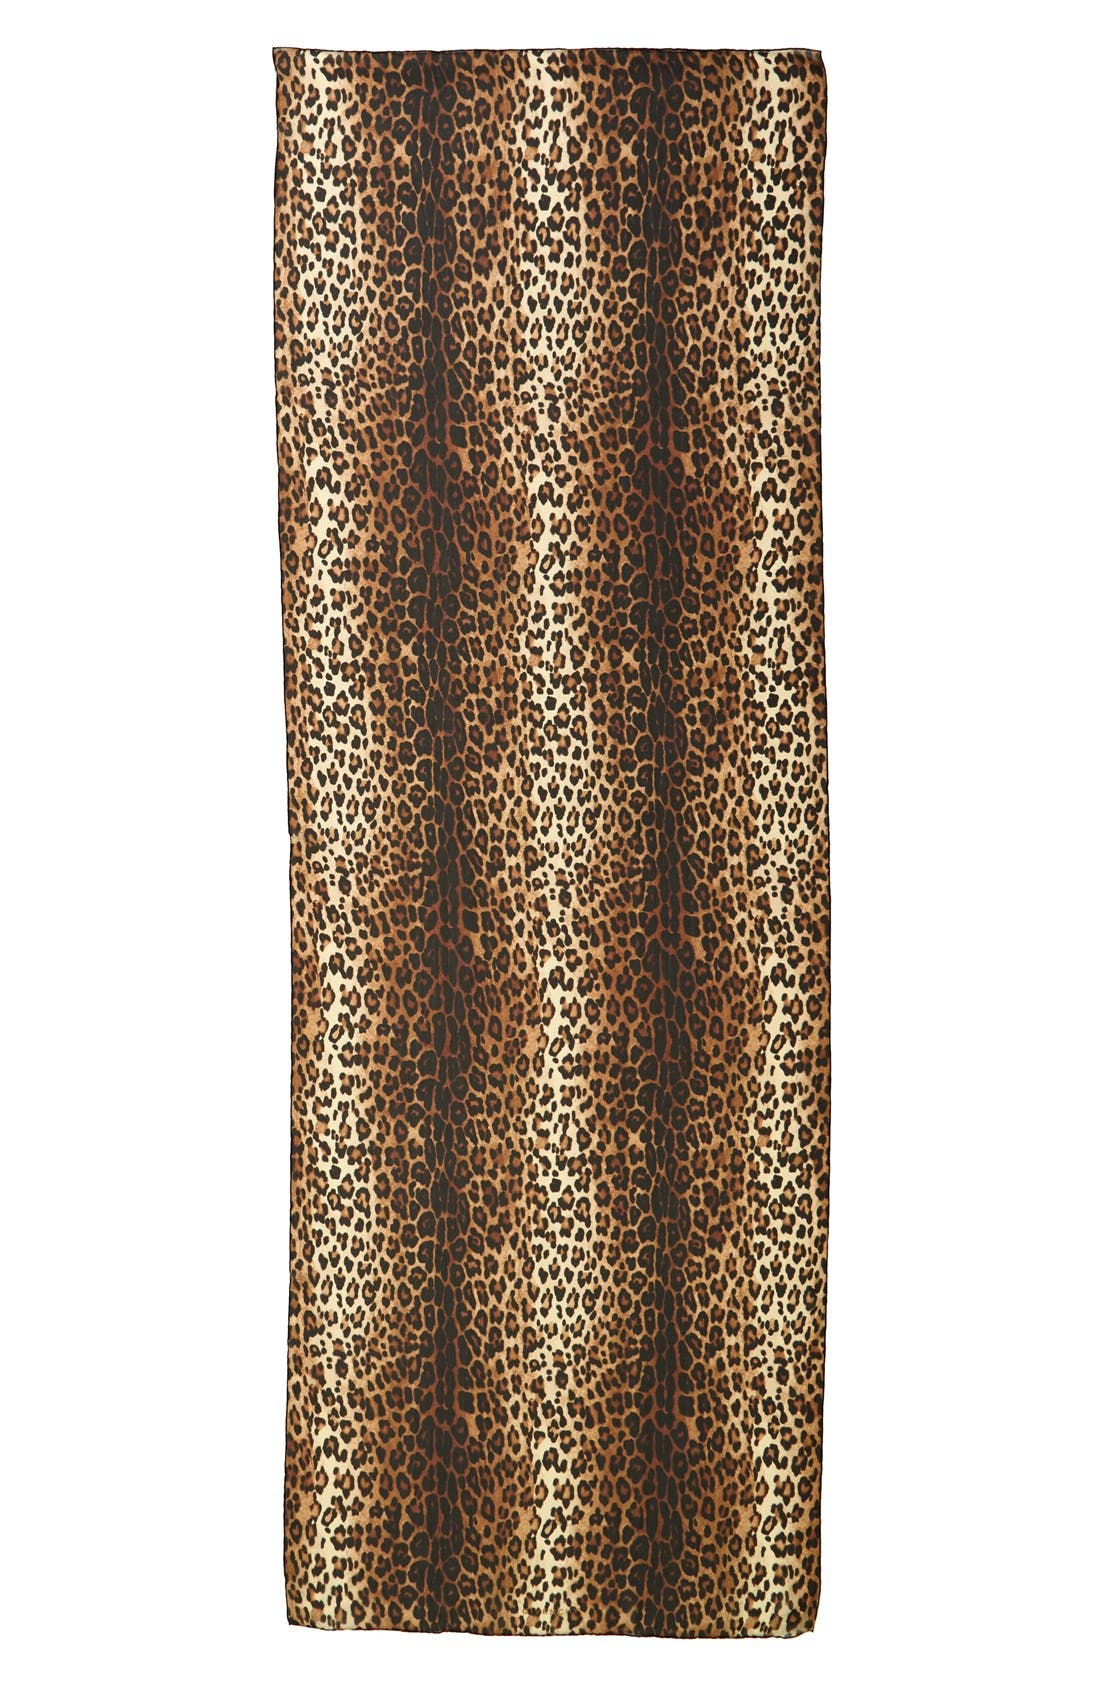 GIVENCHY,                             Leopard Print Silk Scarf,                             Alternate thumbnail 2, color,                             200